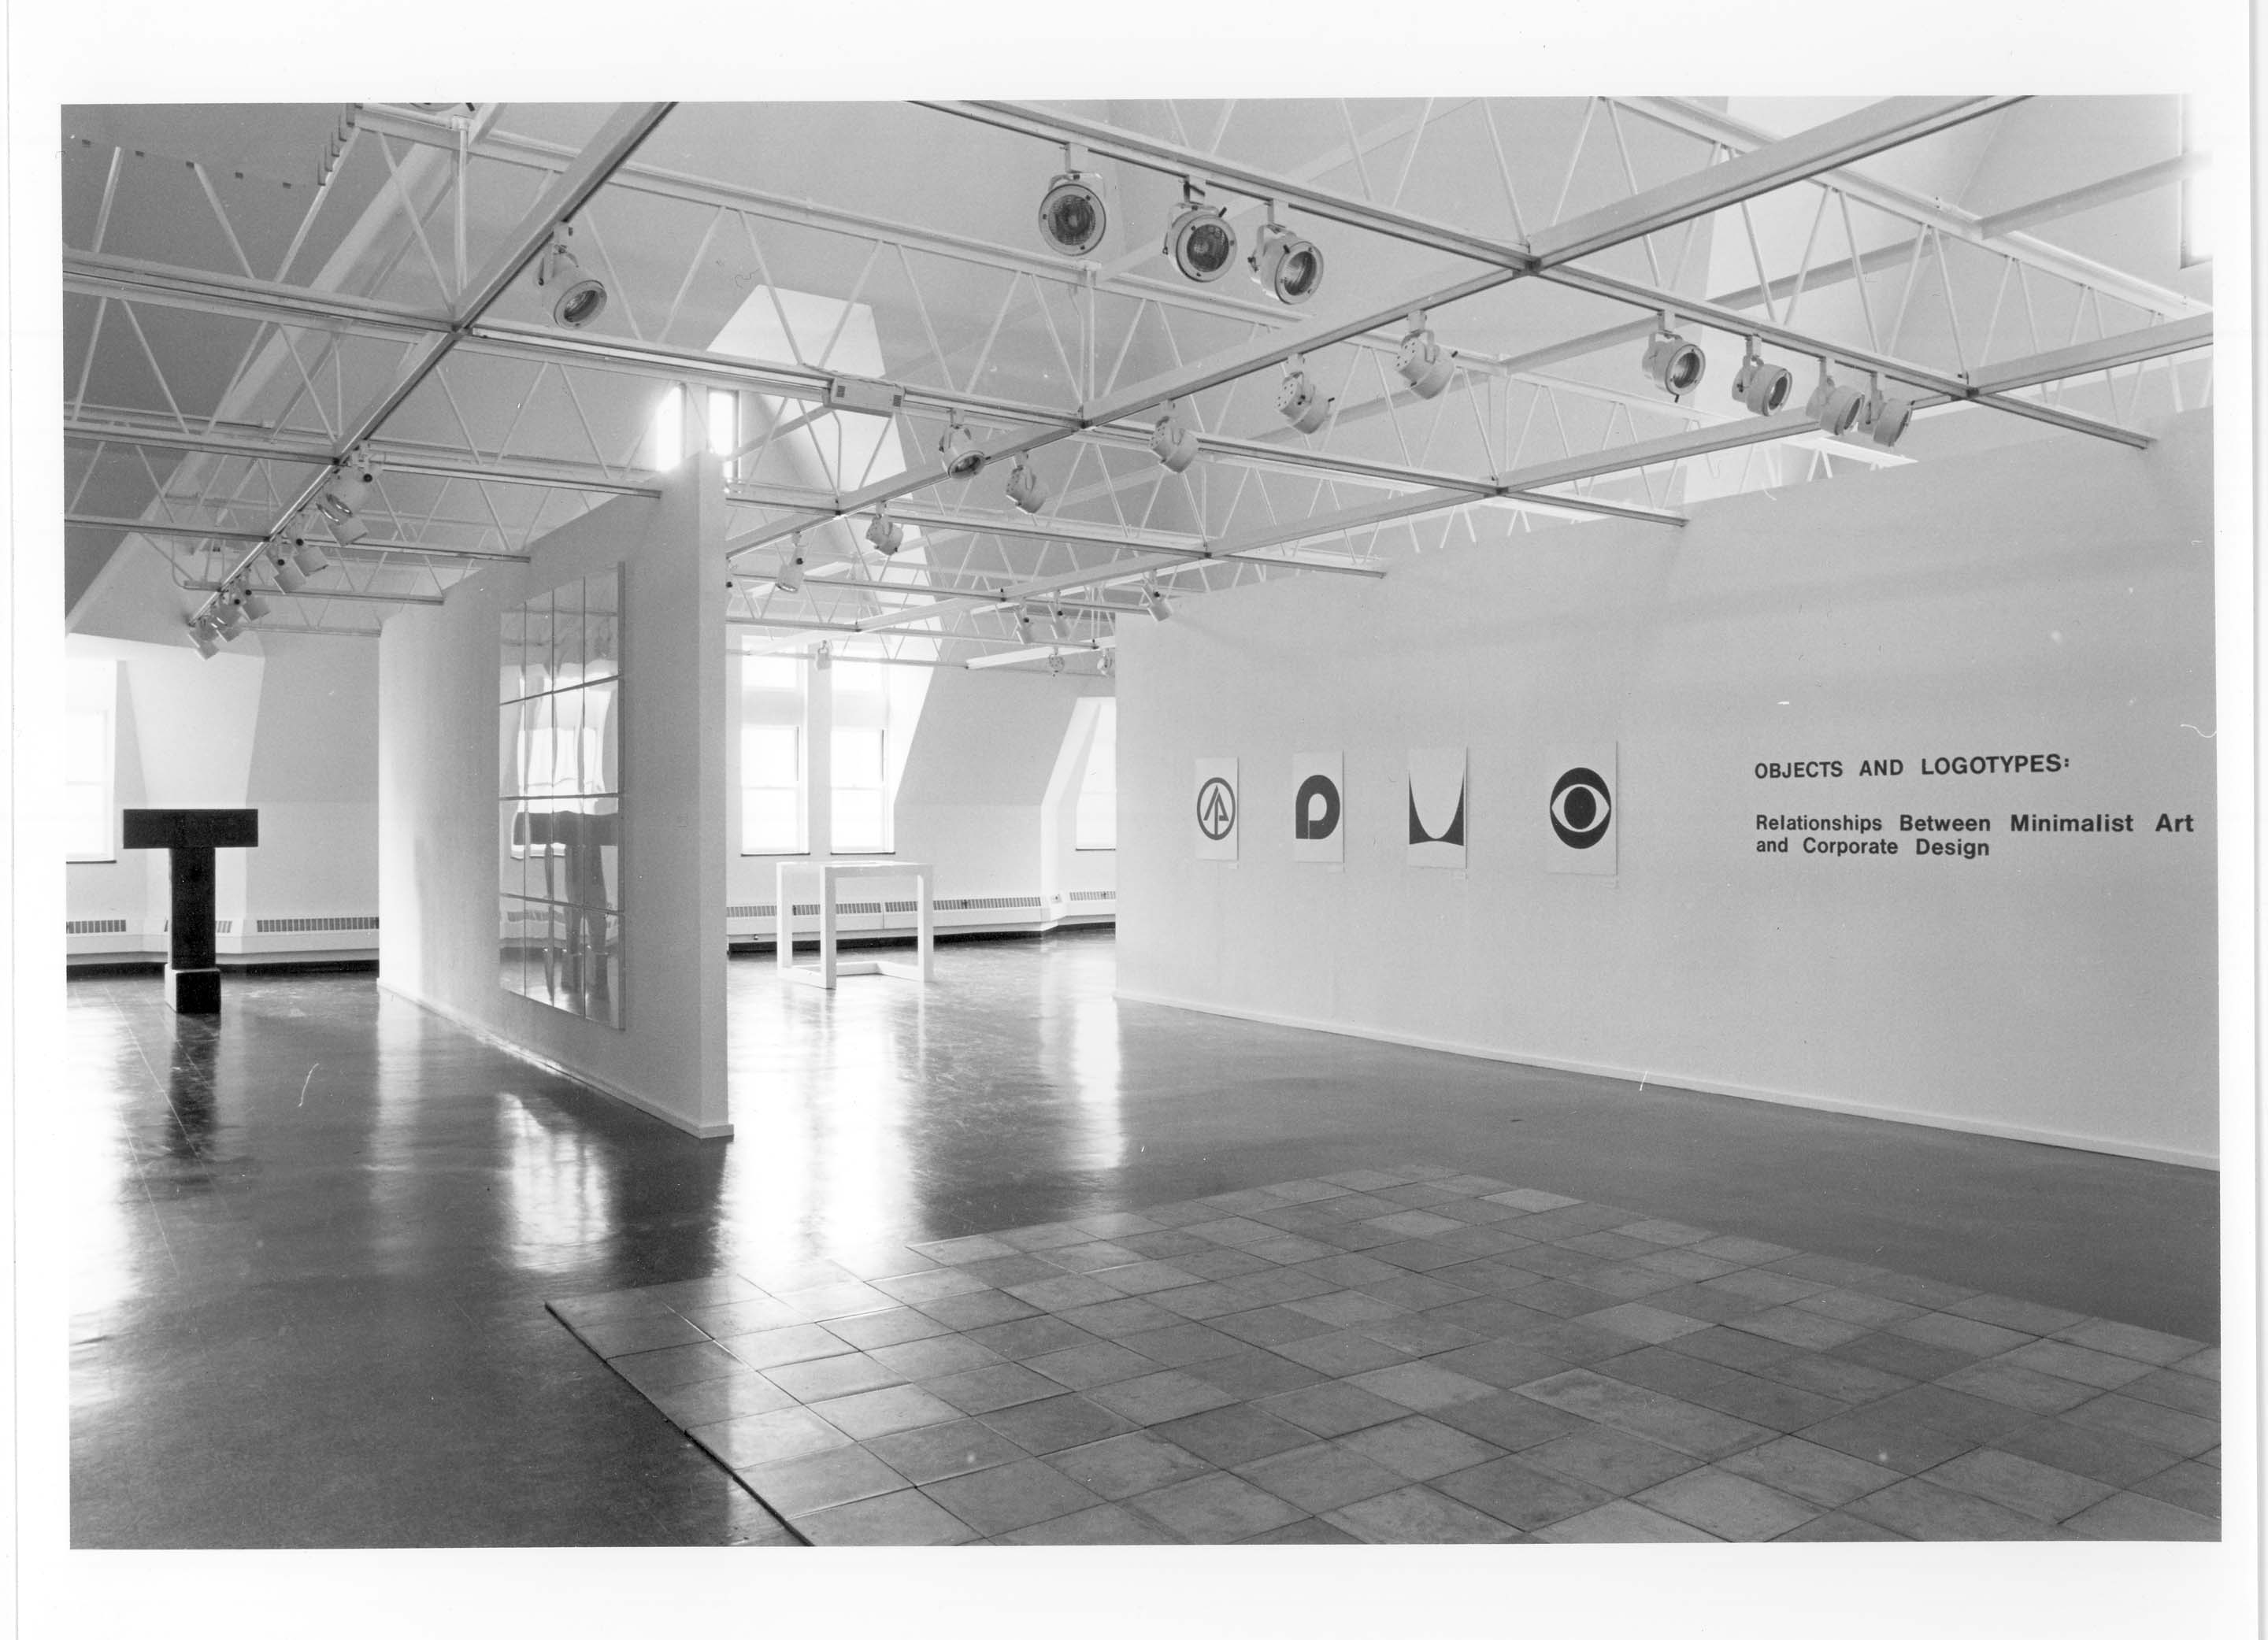 Objects and logotypes relationships between minimal art for Minimal art installation